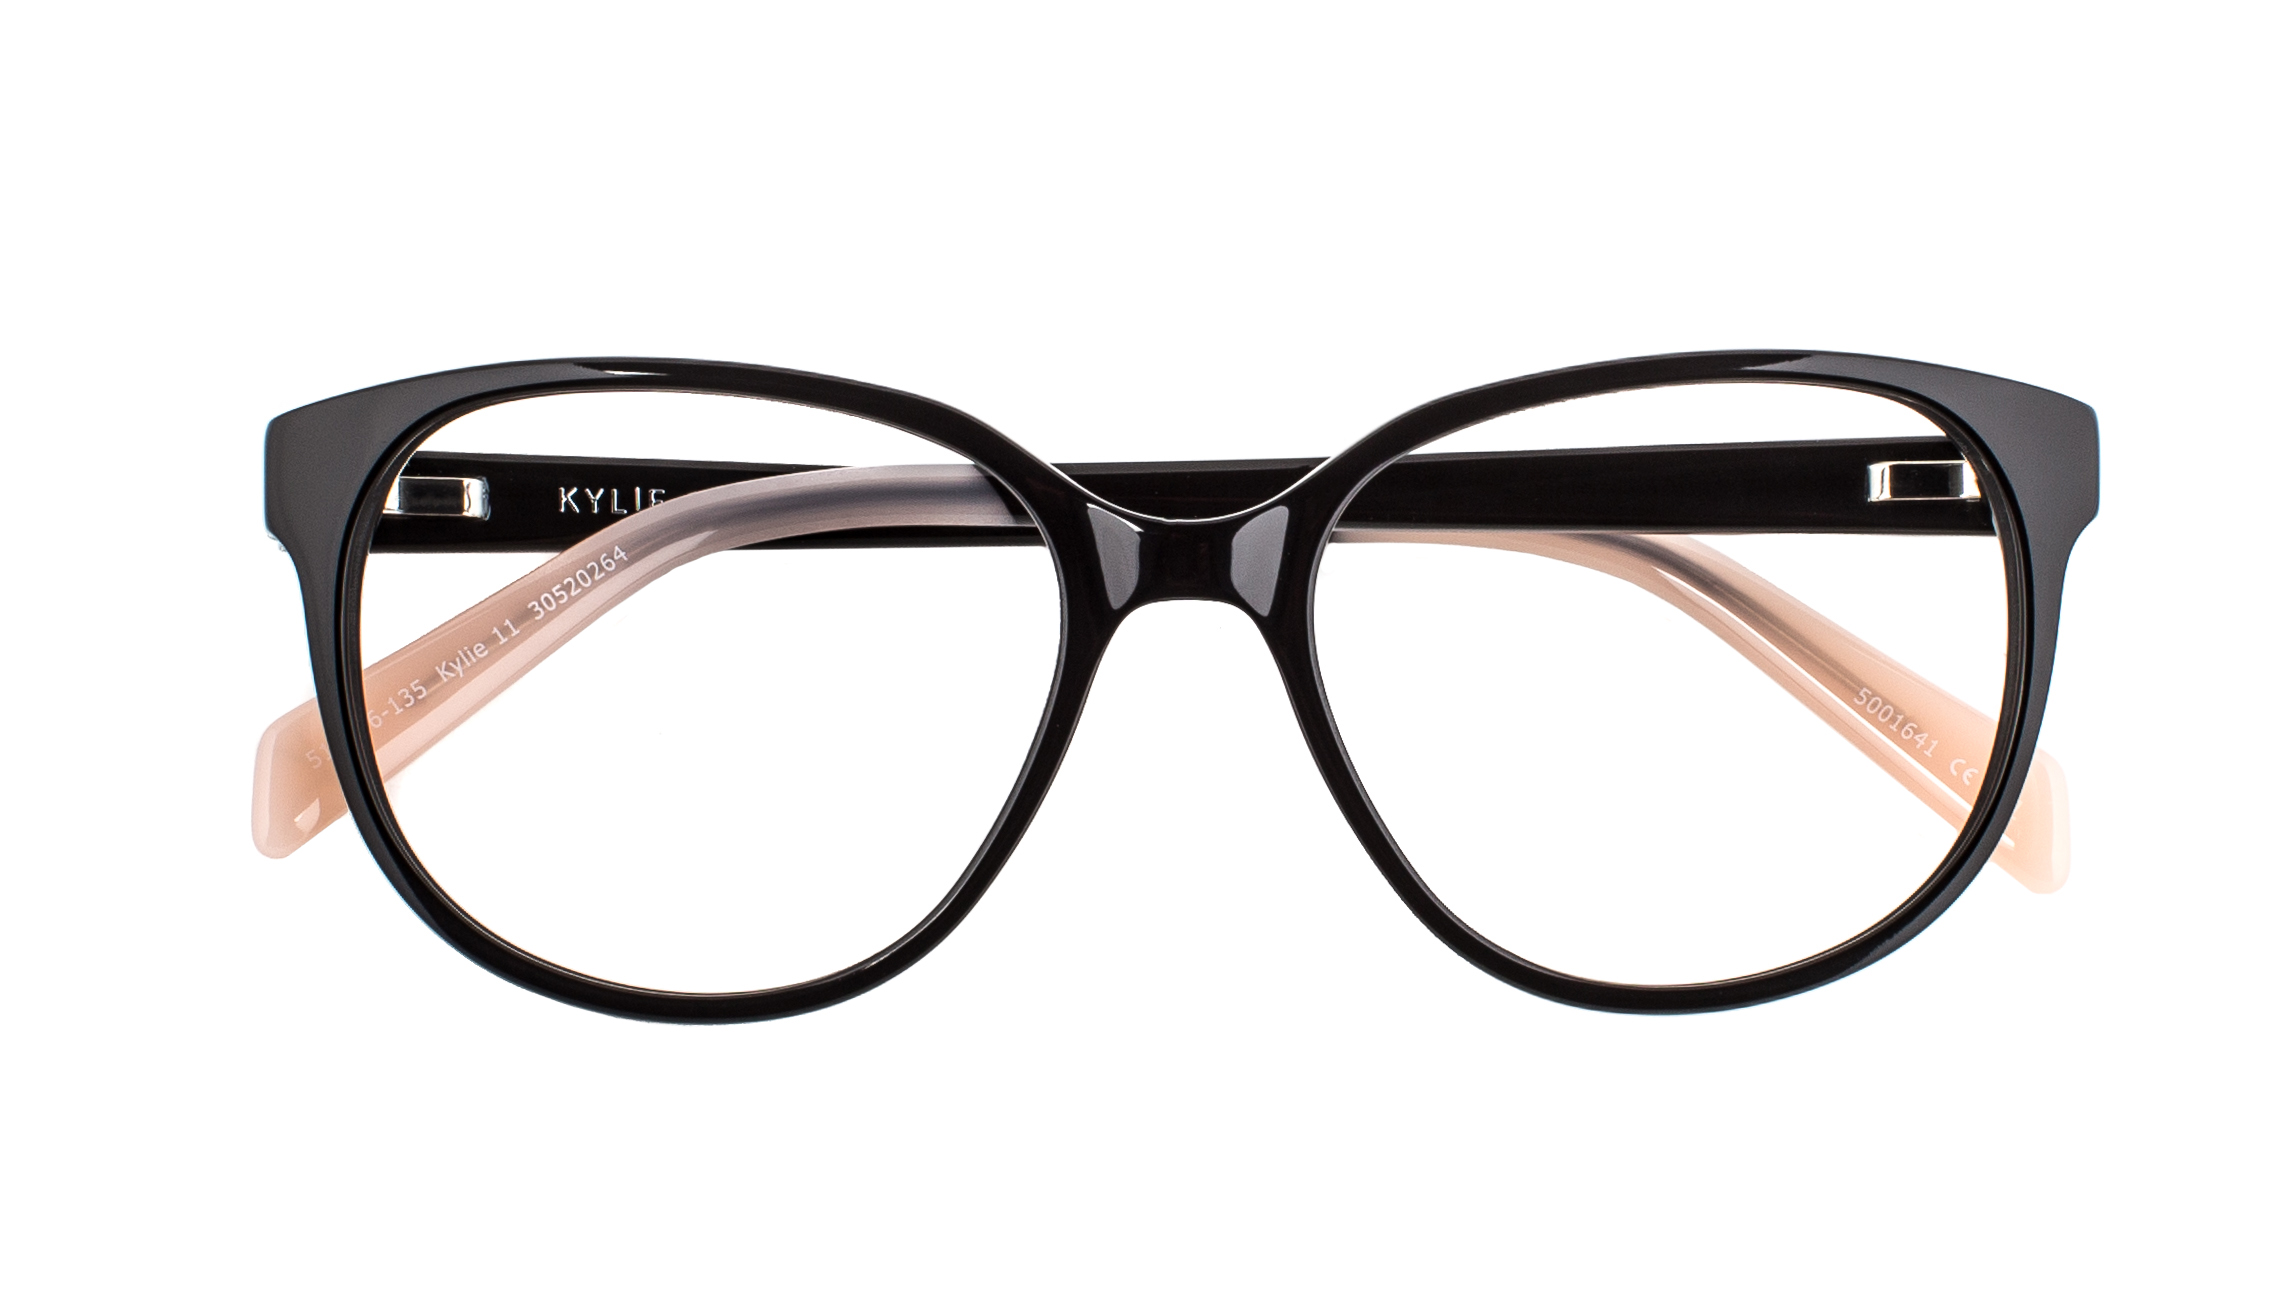 Kylie Minogue Eyewear_Kylie 11_SKU 30520264_RRP 2 pairs from $369